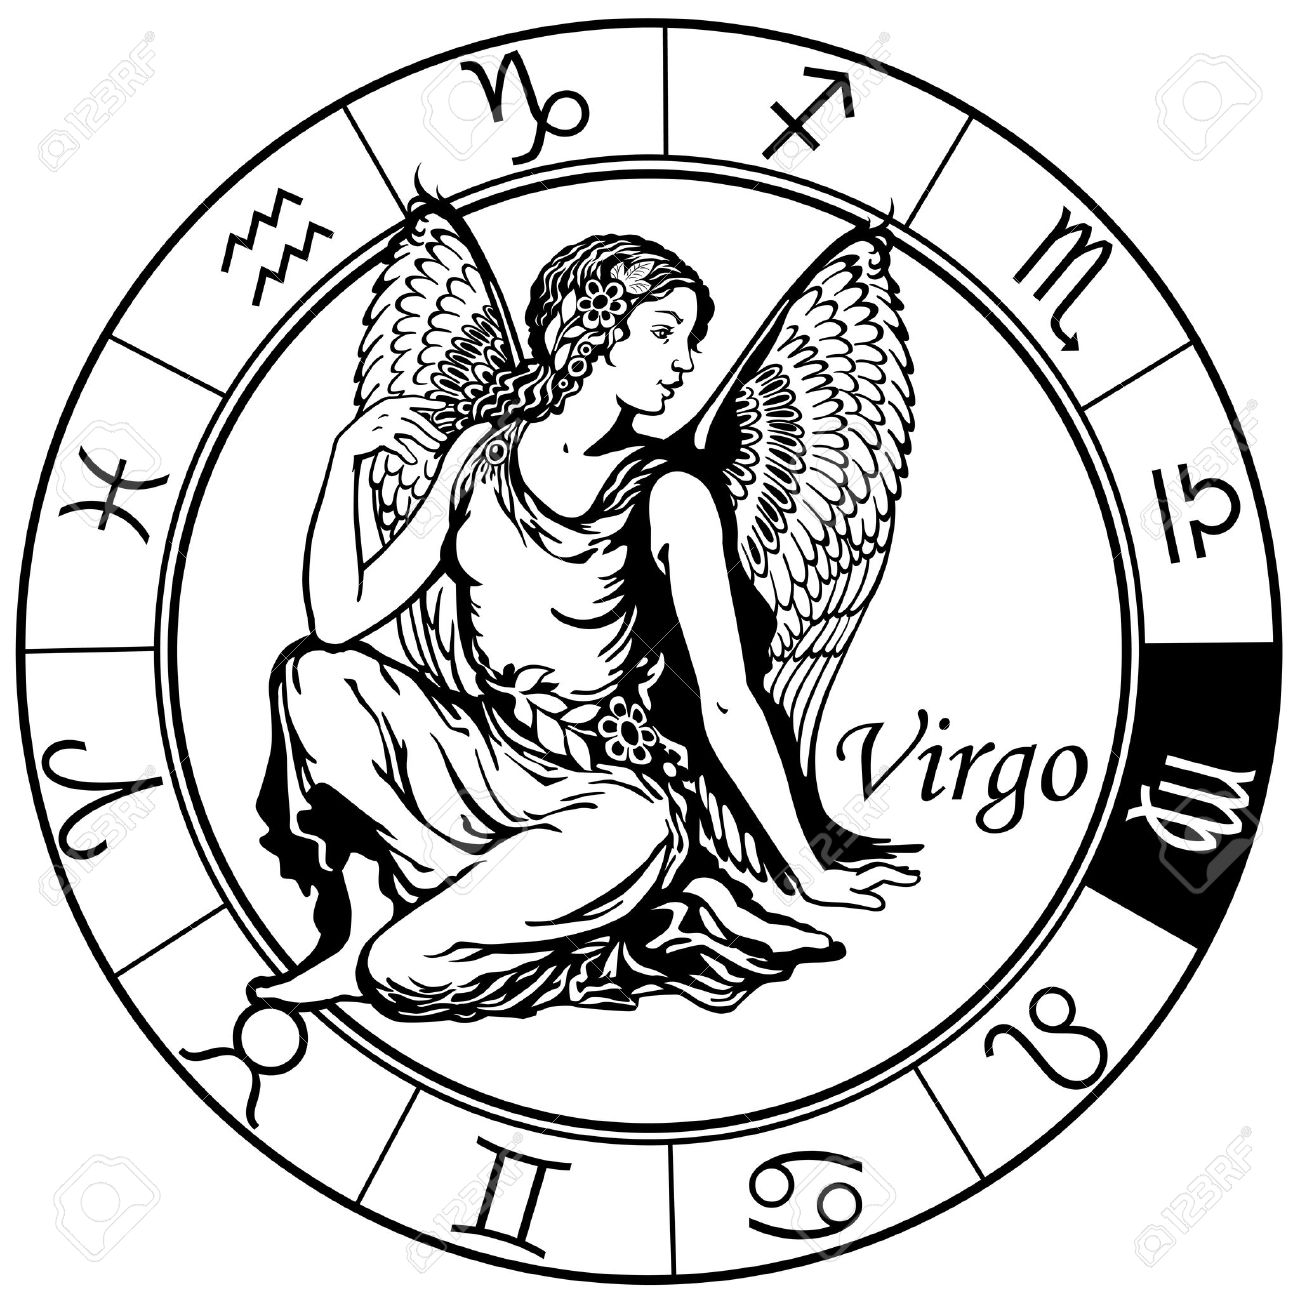 The virgo symbol image collections symbols and meanings virgo astrological zodiac sign black and white image royalty free virgo astrological zodiac sign black and buycottarizona Images